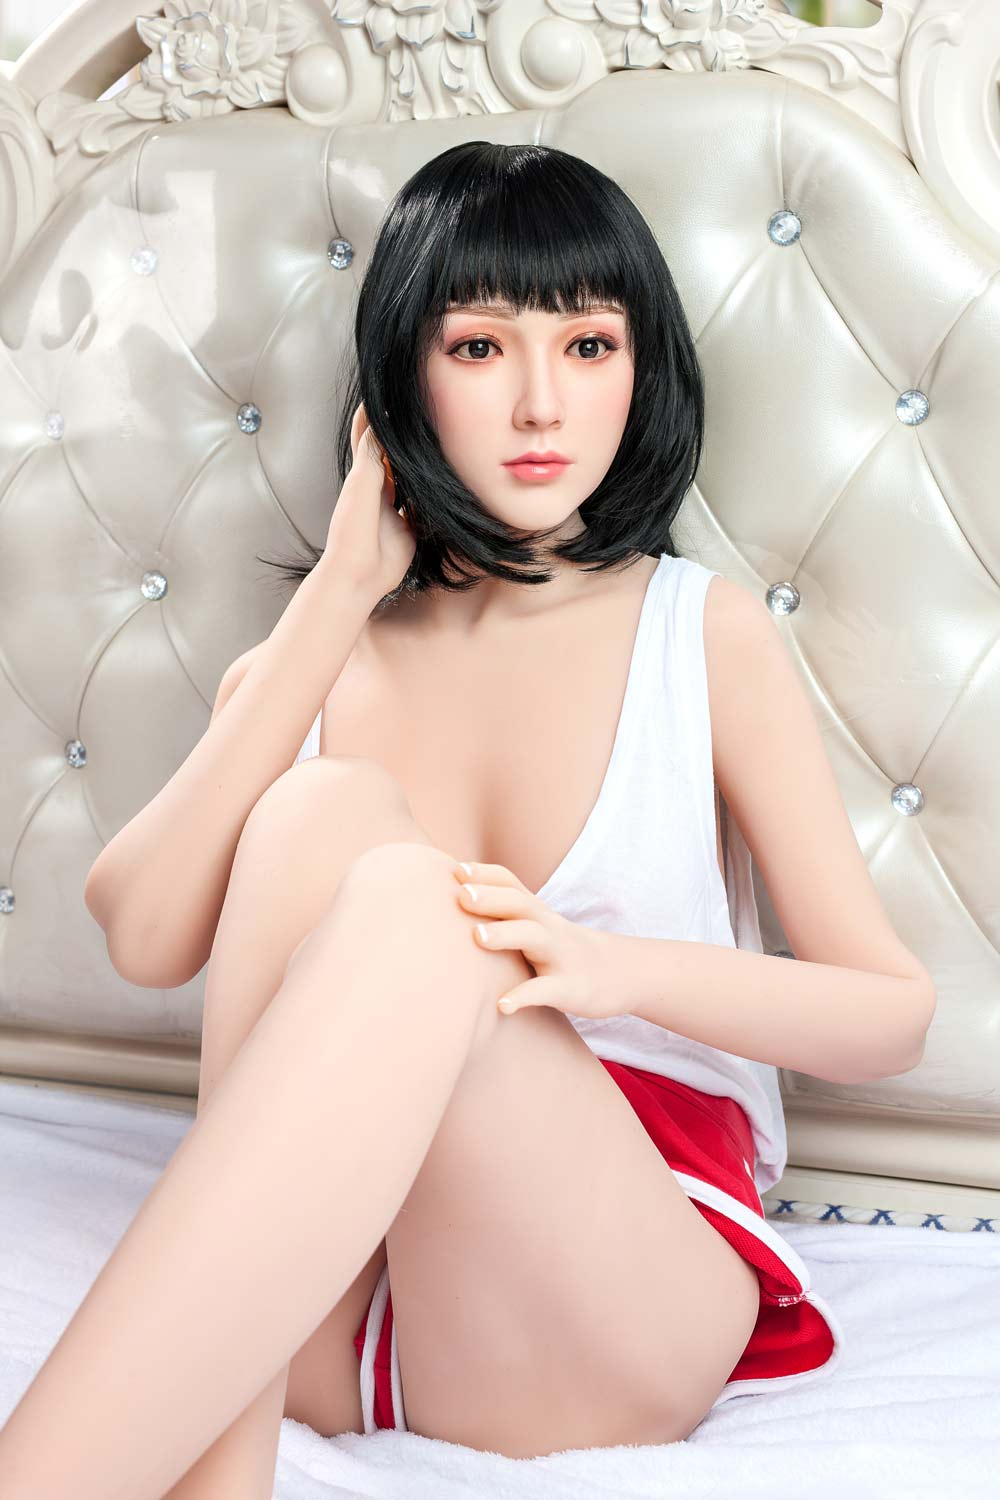 Silicone sex doll with hands on knees